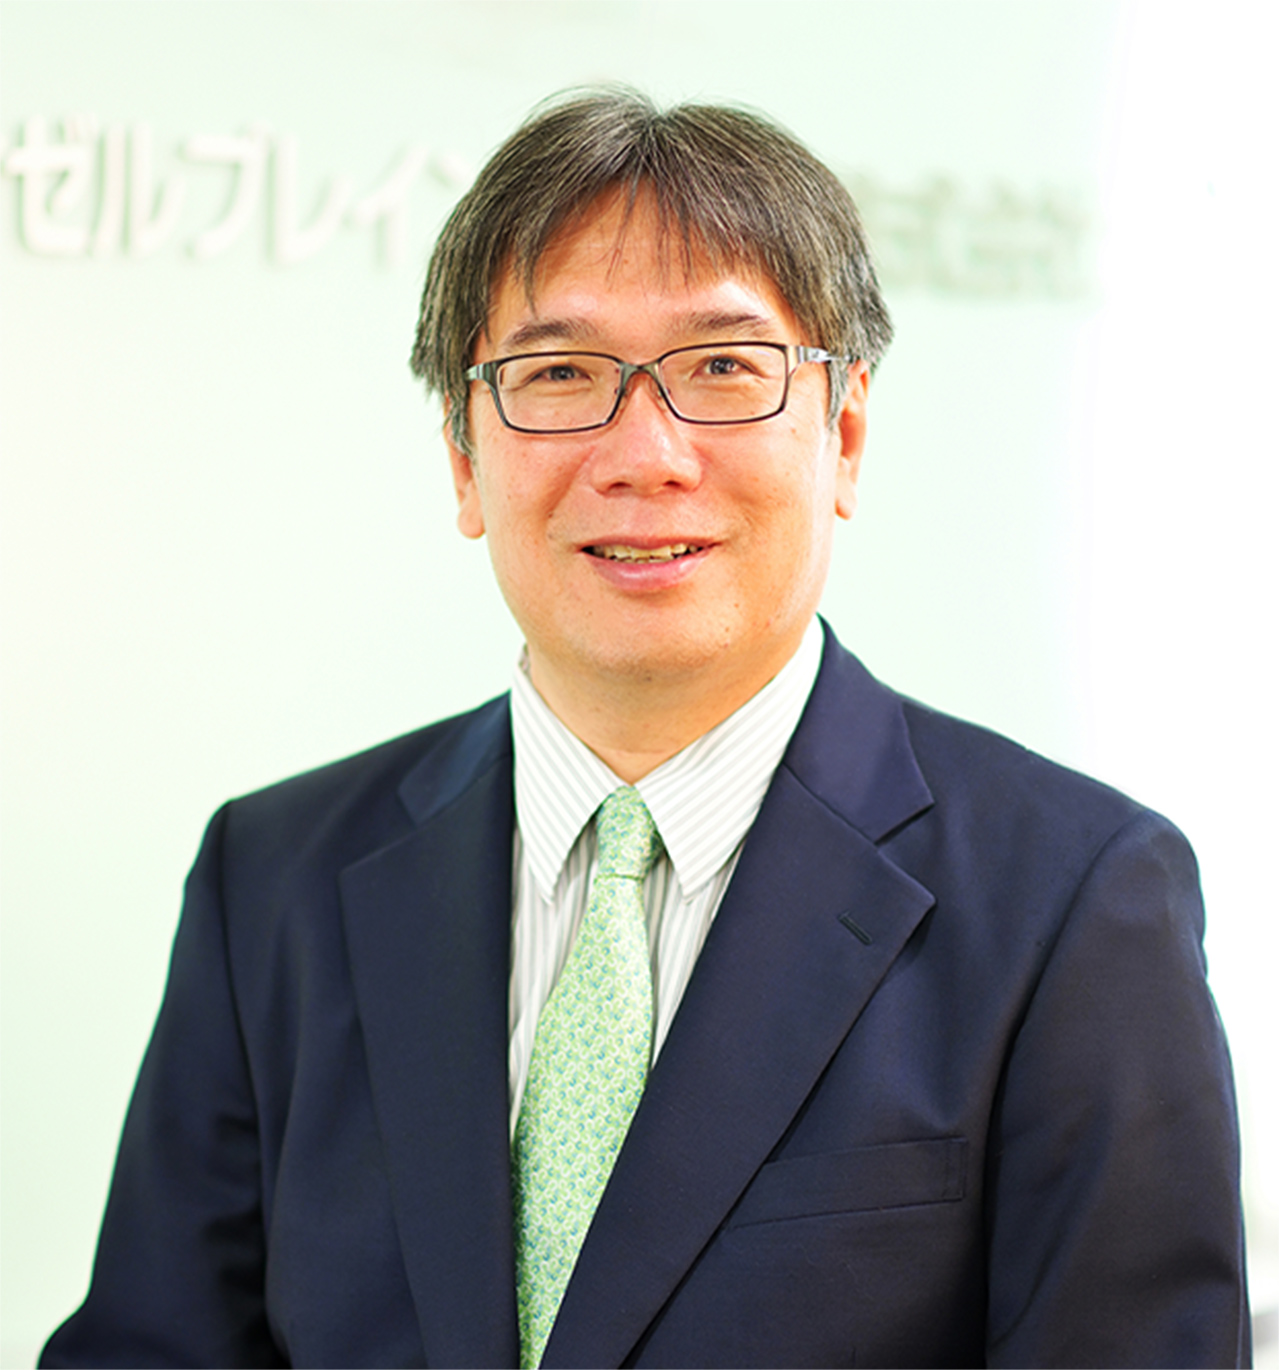 Angel Group Co., Ltd. Yasushi Shigeta, President & CEO